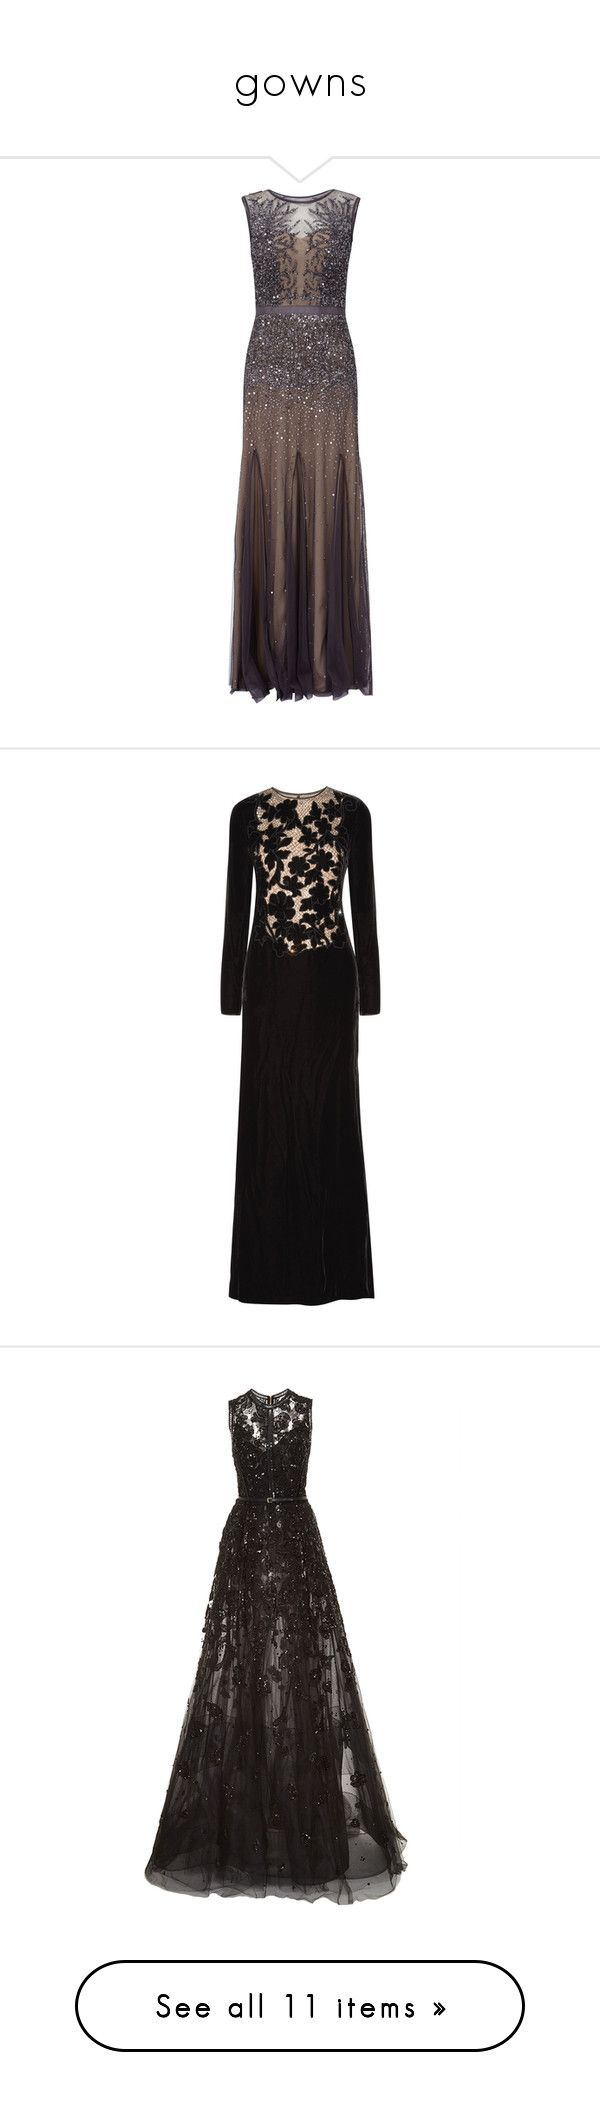 """""""gowns"""" by mia-christine ❤ liked on Polyvore featuring dresses, gowns, long dress, petite, long sleeve dresses, short sleeve dress, sequin evening dresses, petite maxi dresses, beaded evening dresses and black"""